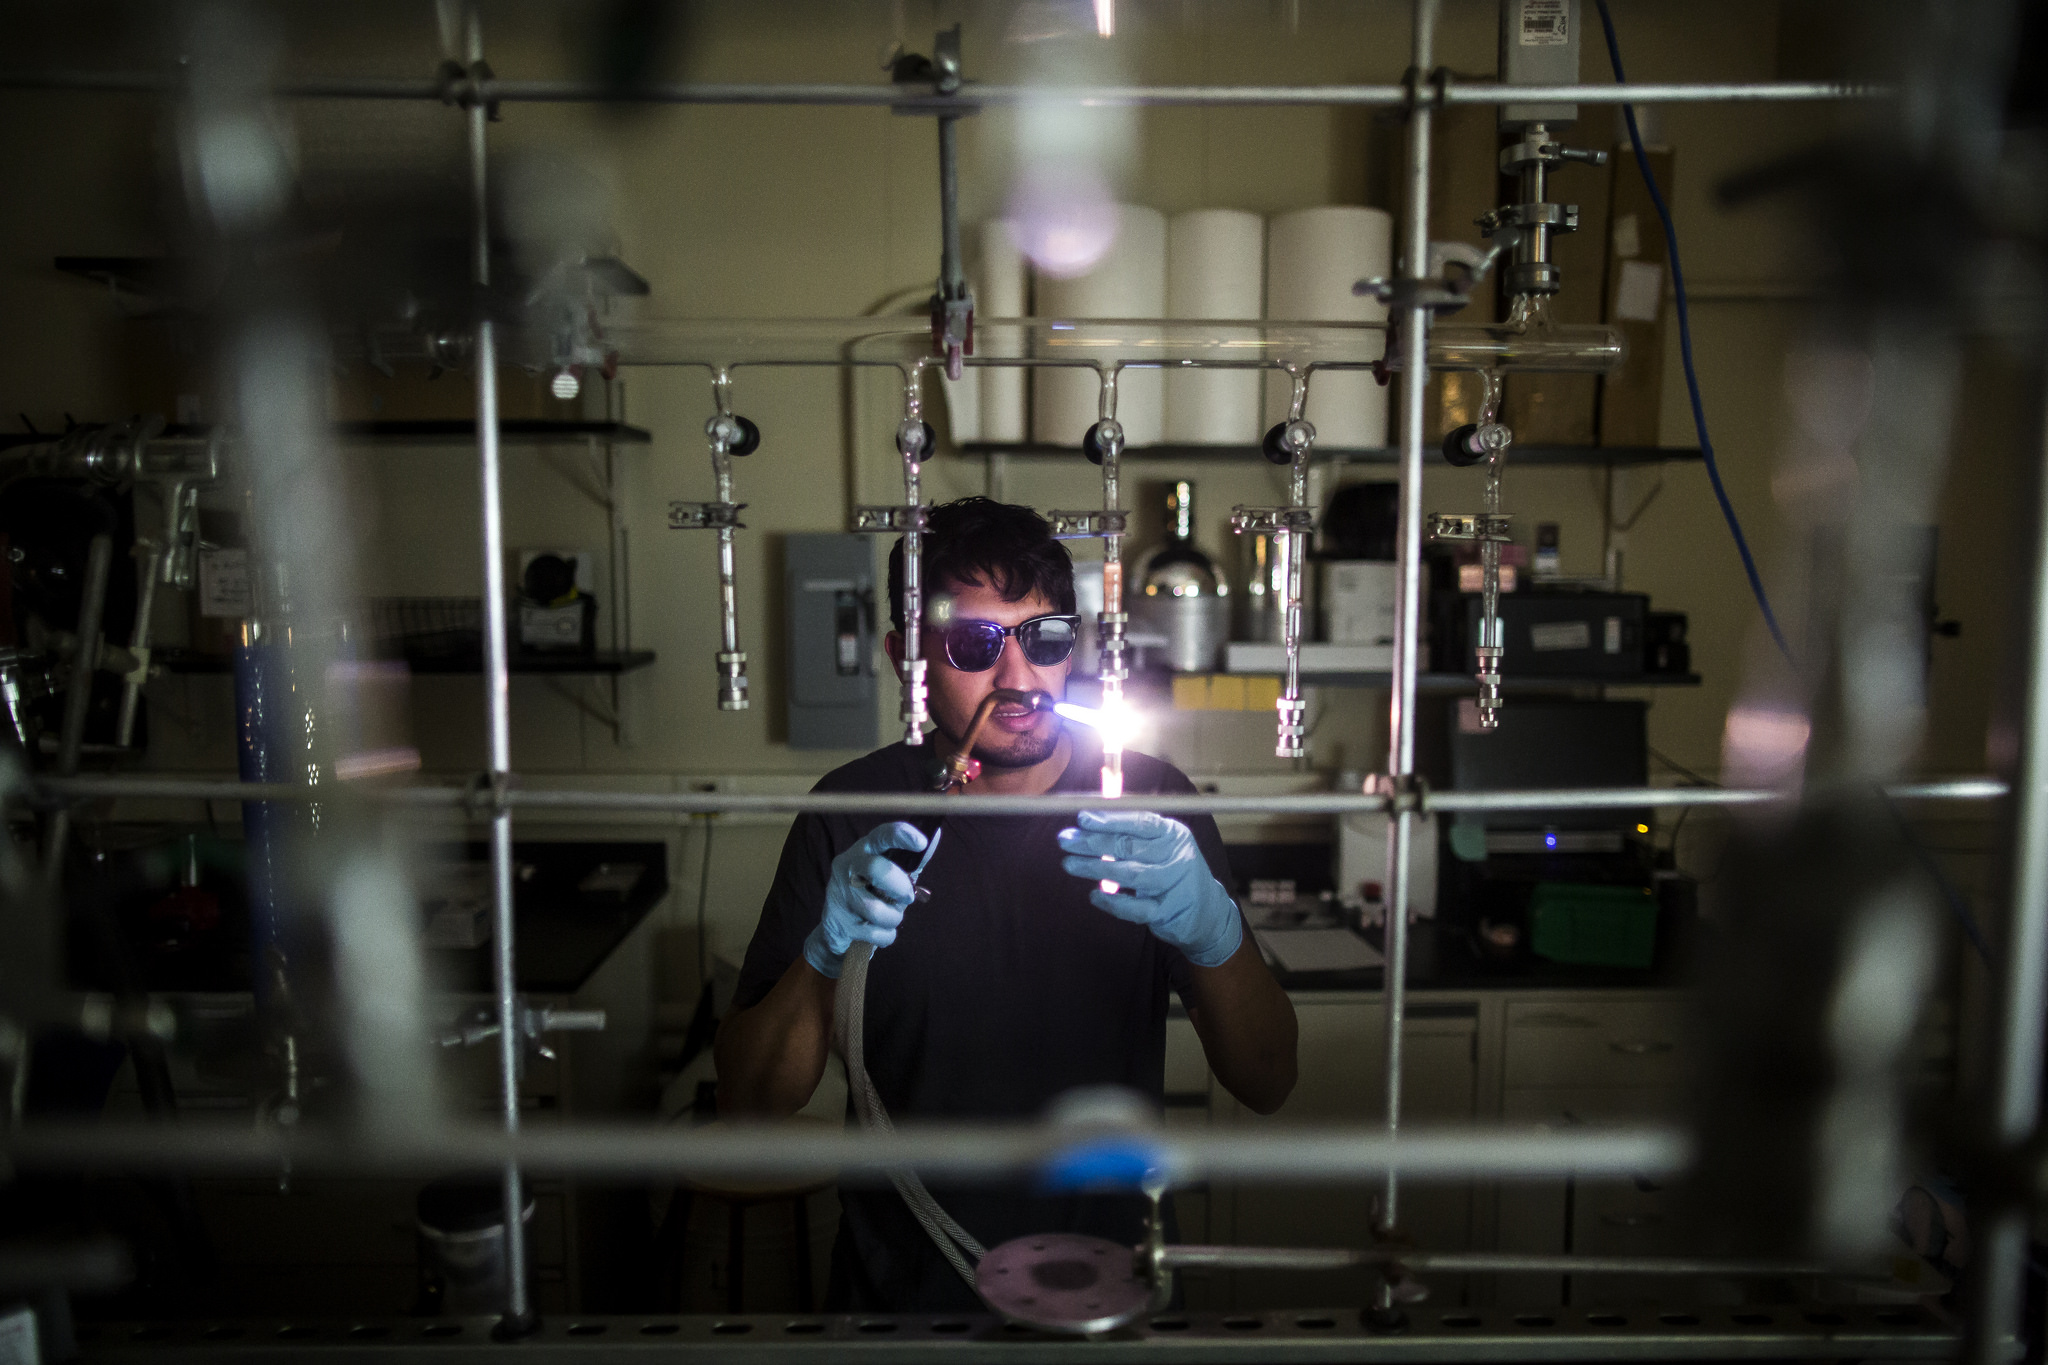 MSE PhD student Juan Lopez cuts a glass tube used in the production process for a new semiconductor compound in the HH Dow building. Image credit: Joseph Xu